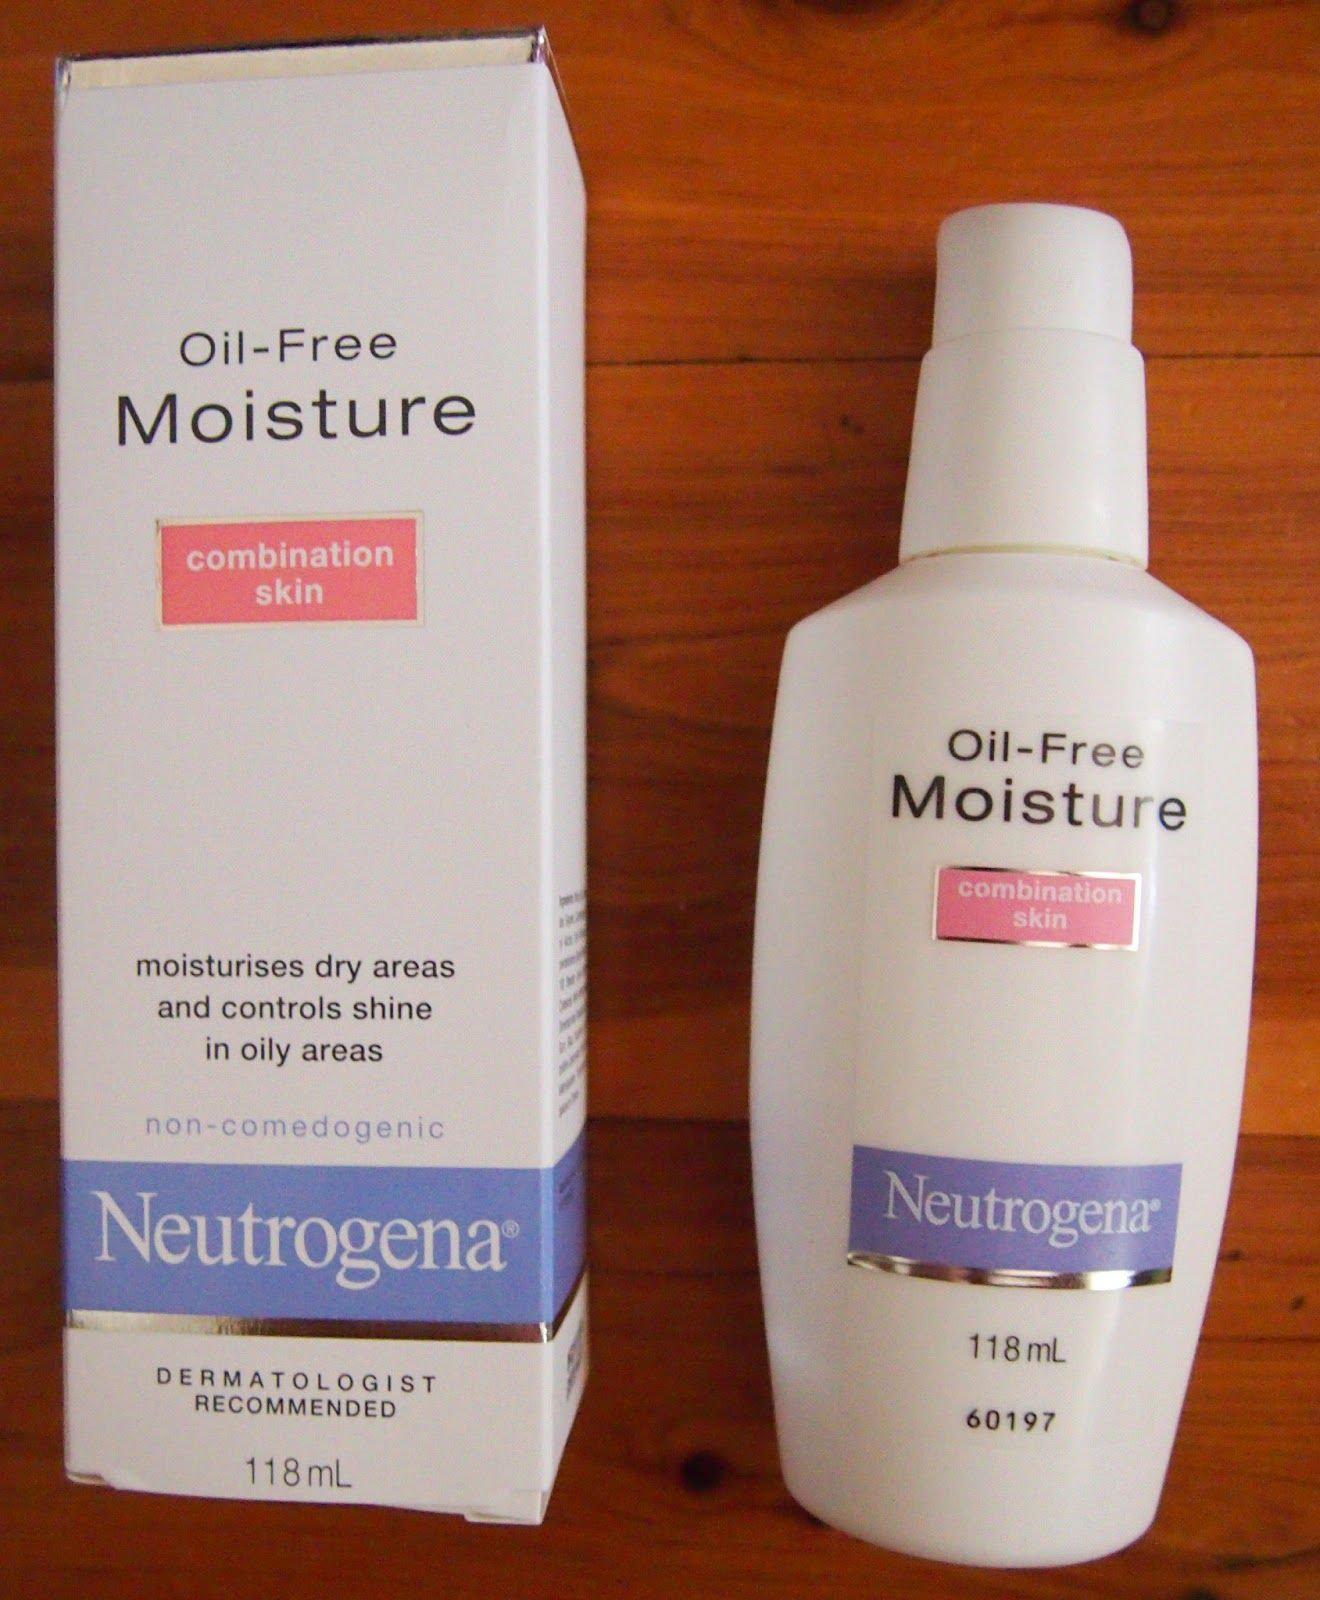 Grocery/convenience stores. Moisturizer, Oily sensitive